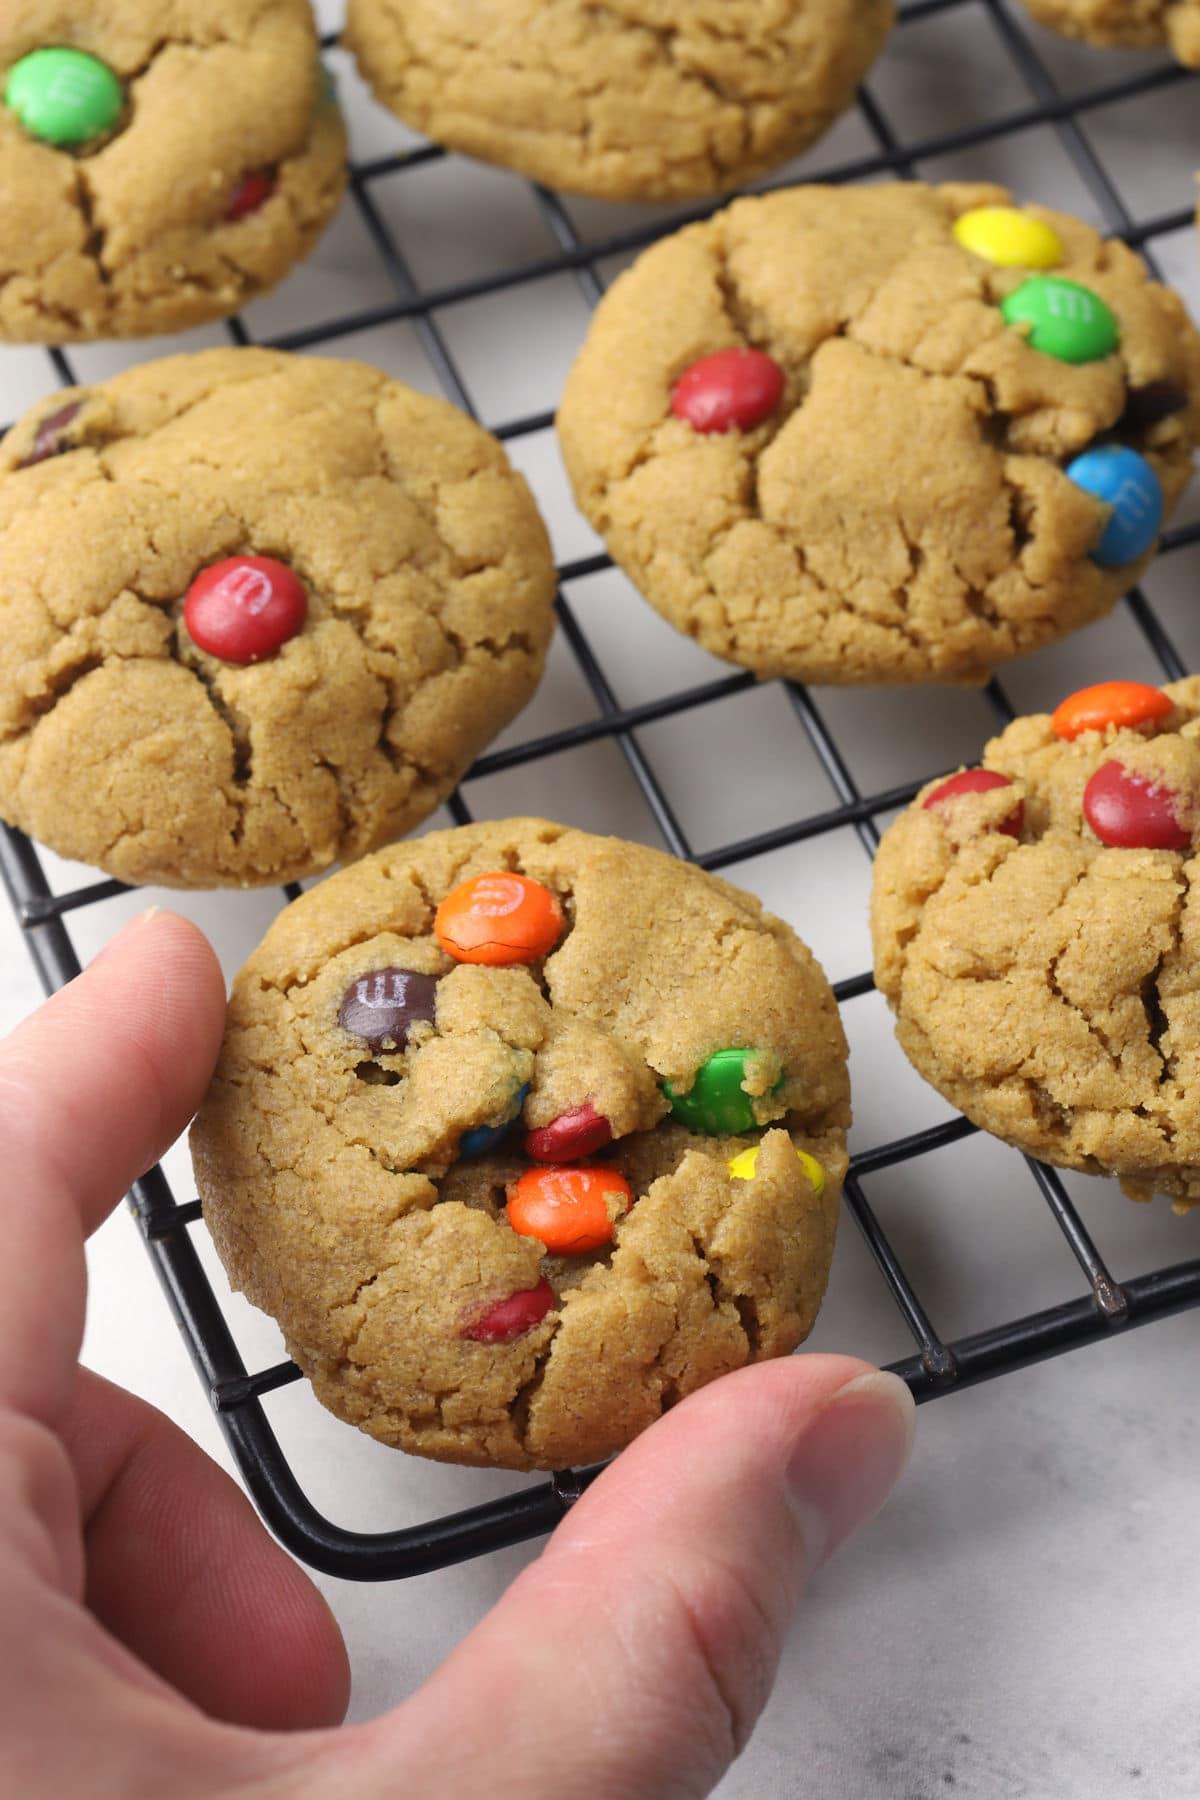 A hand reaching for a peanut butter cookie on a cooling rack.